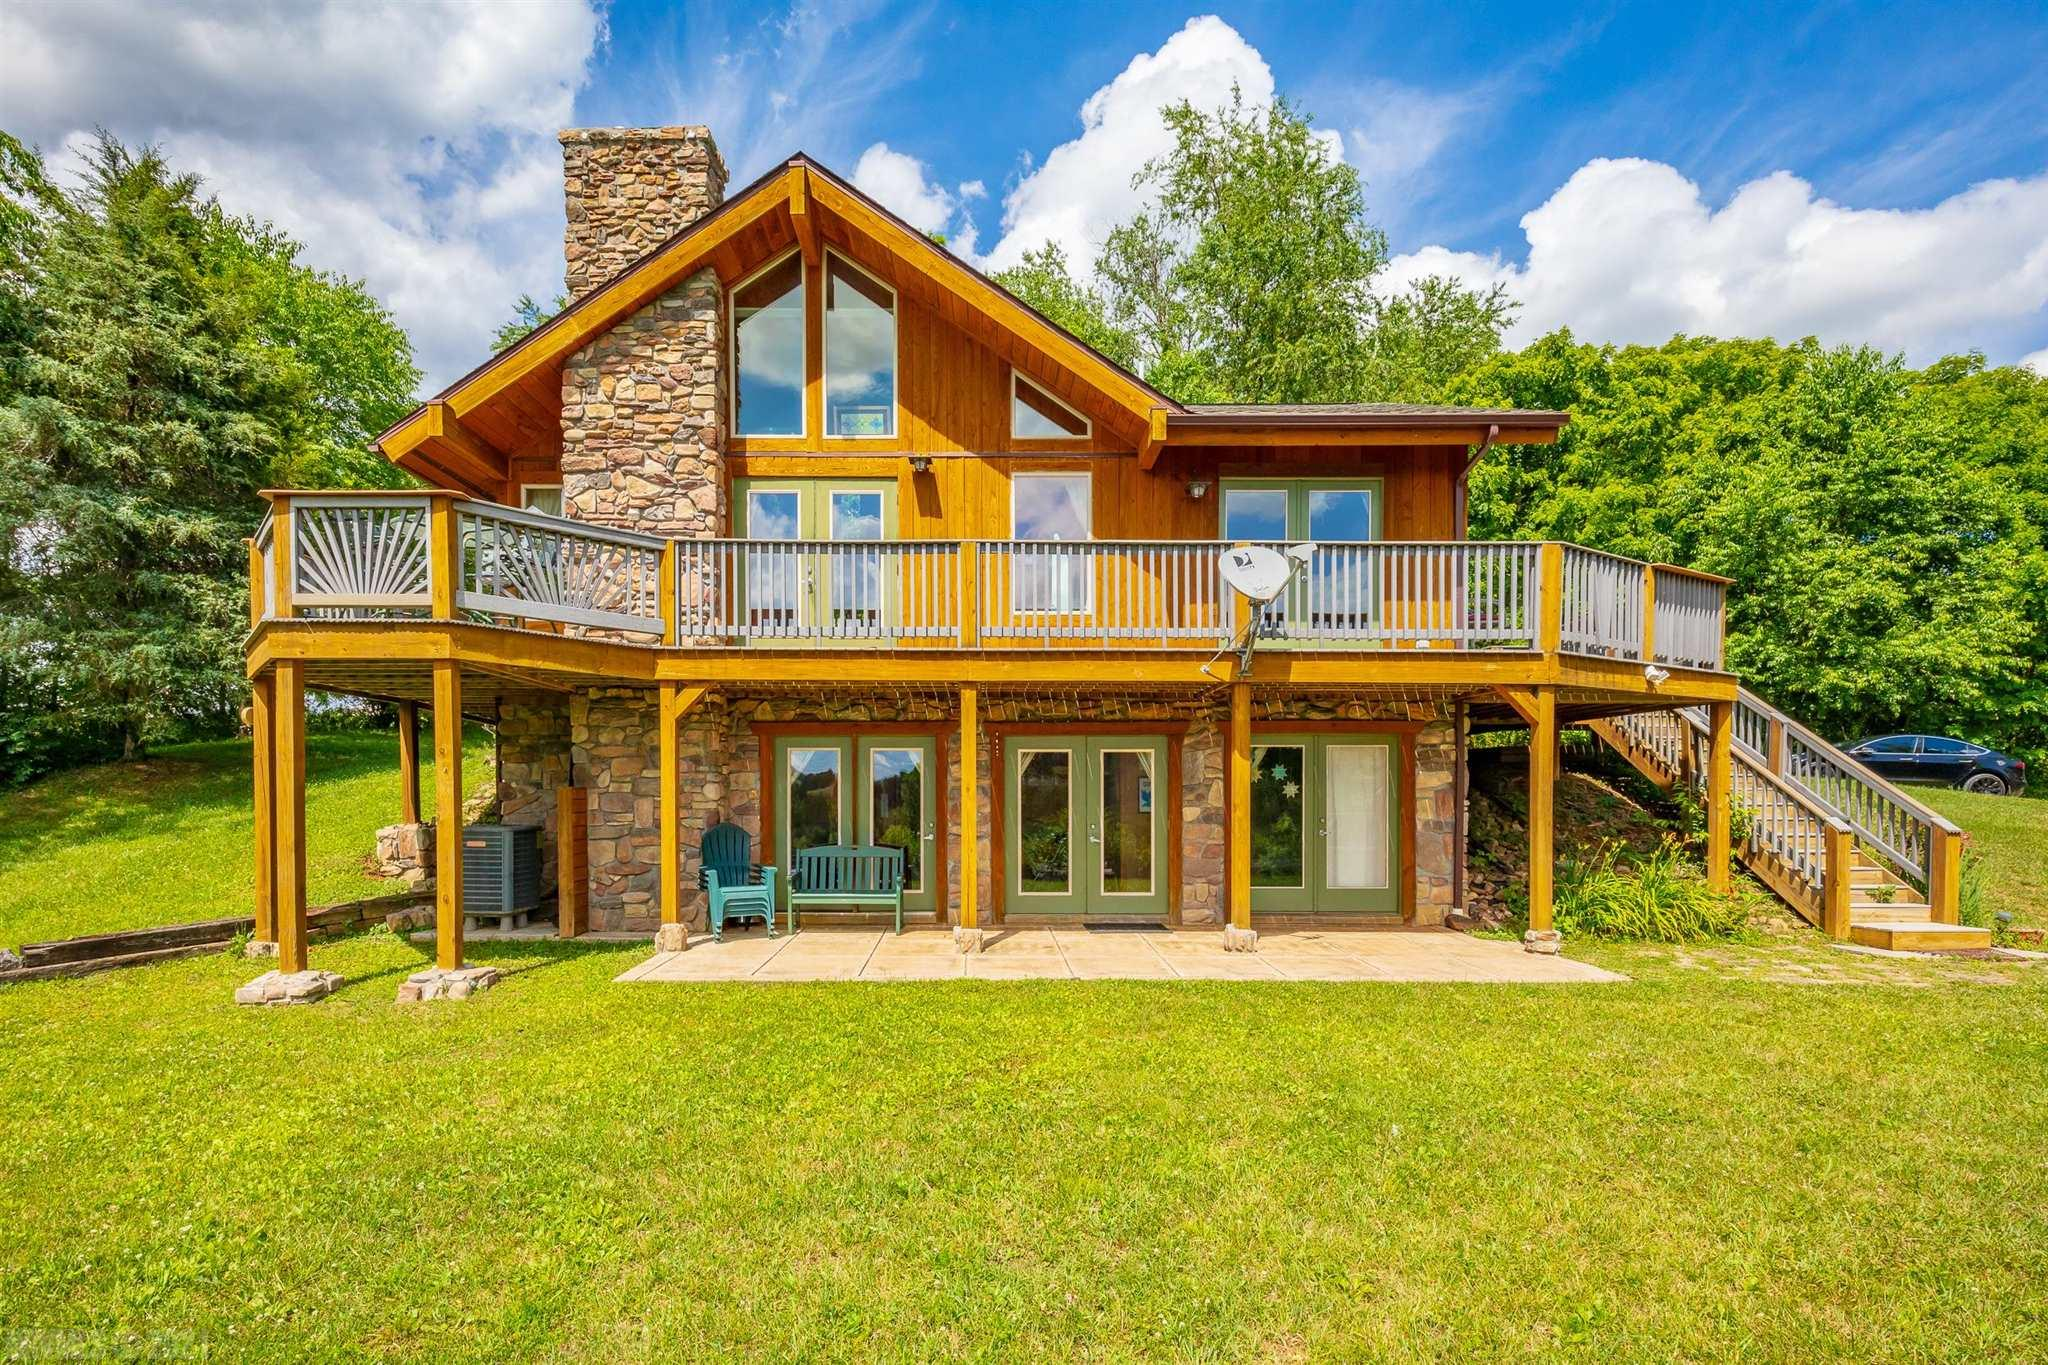 """Dreaming about the ideal get-a-way with lovely mountain views?  With 2.60 private acres you will feel you're on top of the world. With plenty of outdoors space for gardening or entertaining along with access to the wonders of Southwest Virginia. Close by is a bountiful trout stream, golf courses, a lake, hiking, biking, and shopping. The home features an open concept kitchen with 42"""" upper oak cabinets & bases topped with stunning blue pearl granite counter tops. This space includes a dining/living area adorn with cathedral ceilings & a gas log fireplace framed with tile and local artifacts. A full bath and large bedroom are also located on the top floor. A spiral stair case will carry you down to another living space. A cozy den and another bath and bedroom are found on the lower floor."""